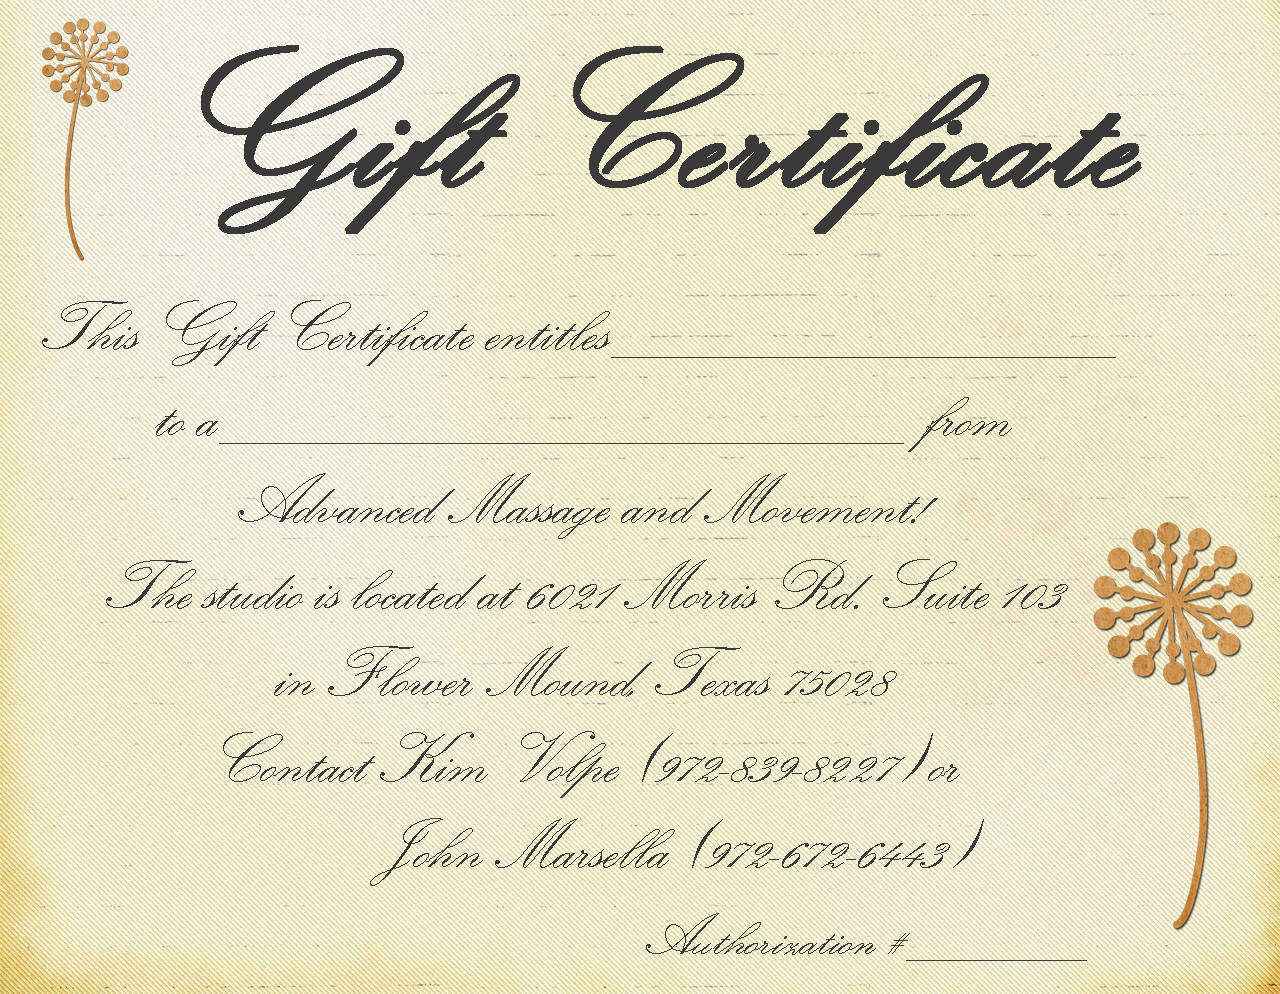 gift certificate blank template, free printable gift certificate forms, free printable blank gift certificate, gift certificate template word, free gift certificate templates for word, free printable fill in certificates, printable fill in gift certificates, free printable certificates, printable gift certificate pdf